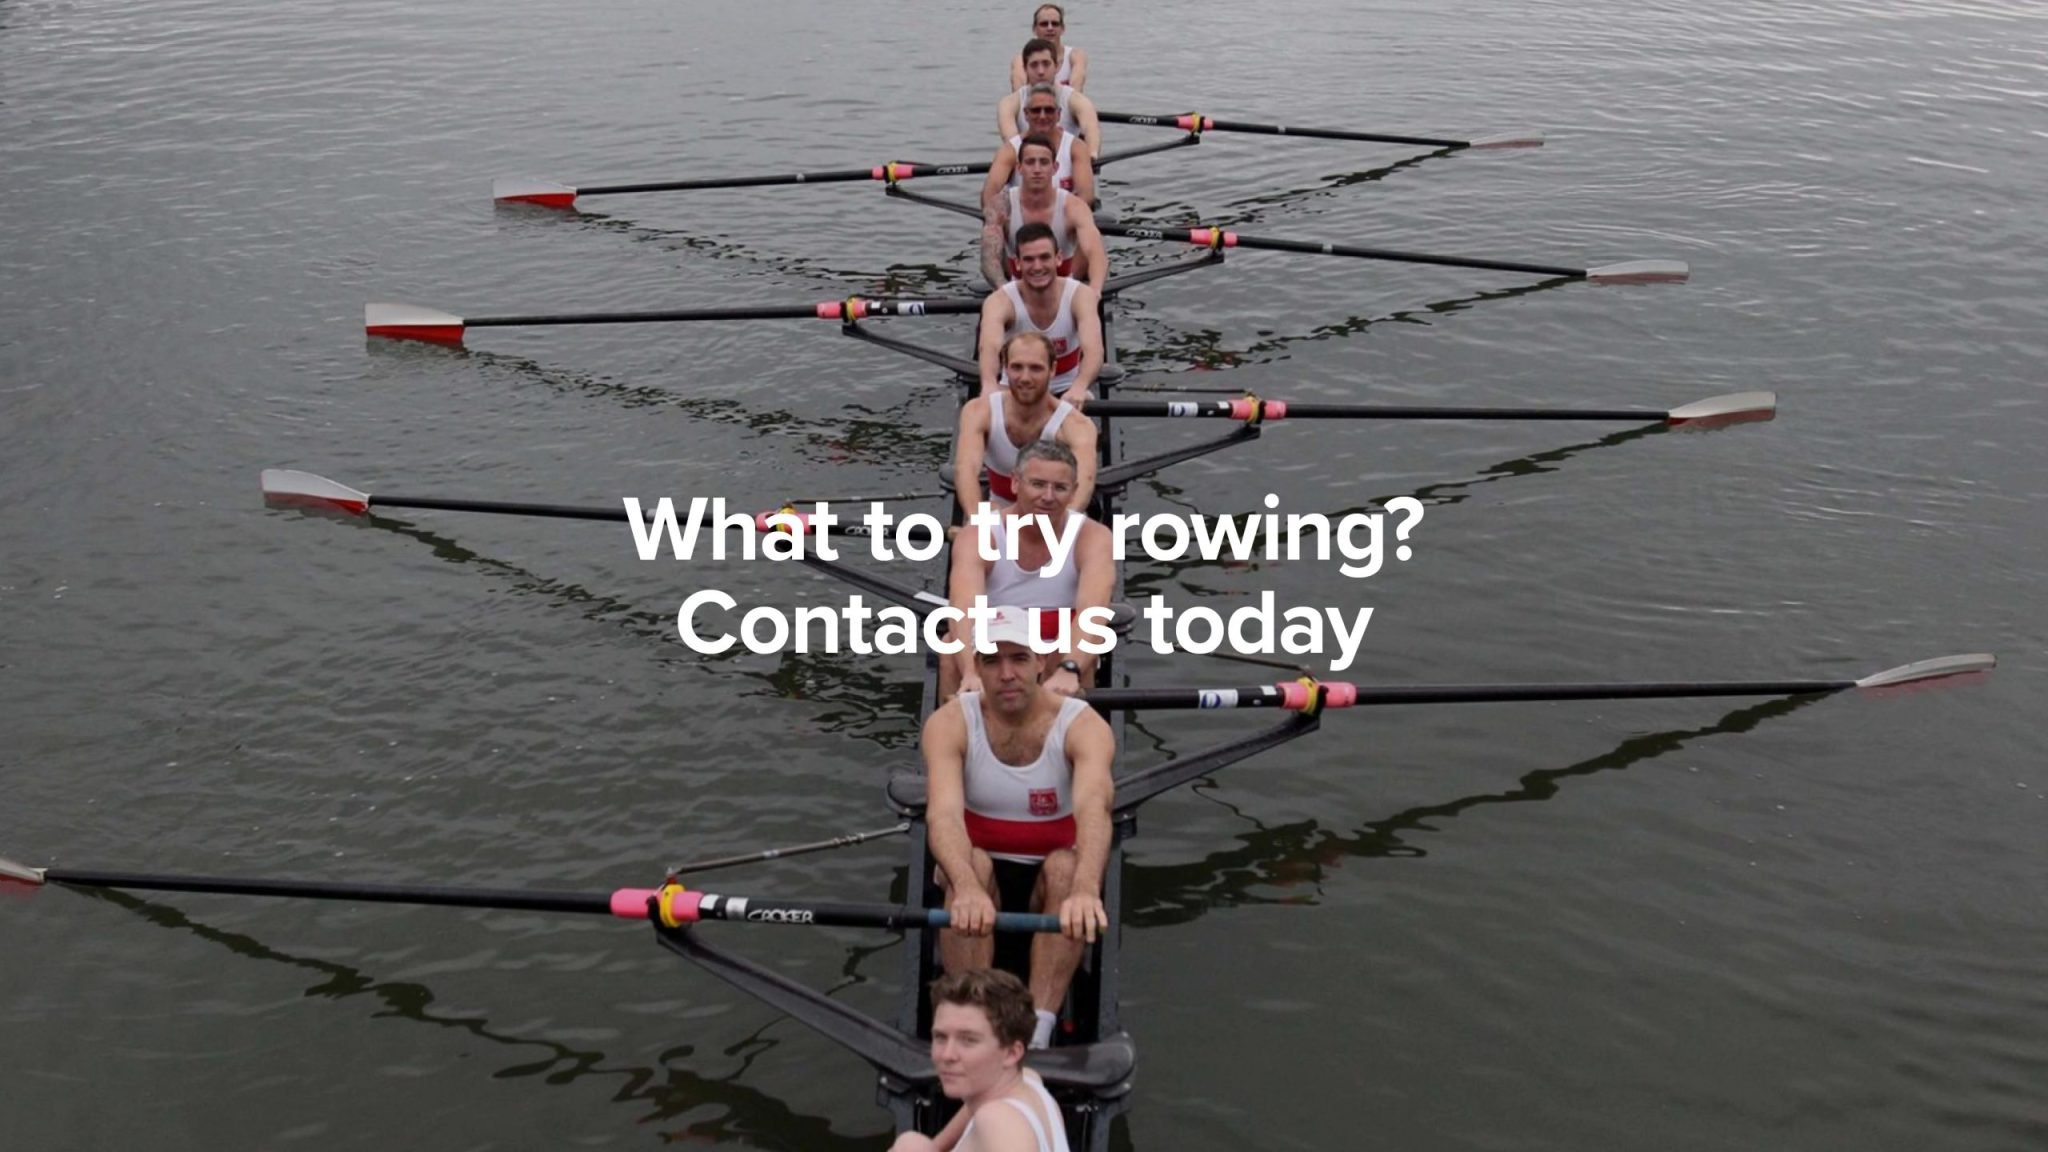 Try rowing today